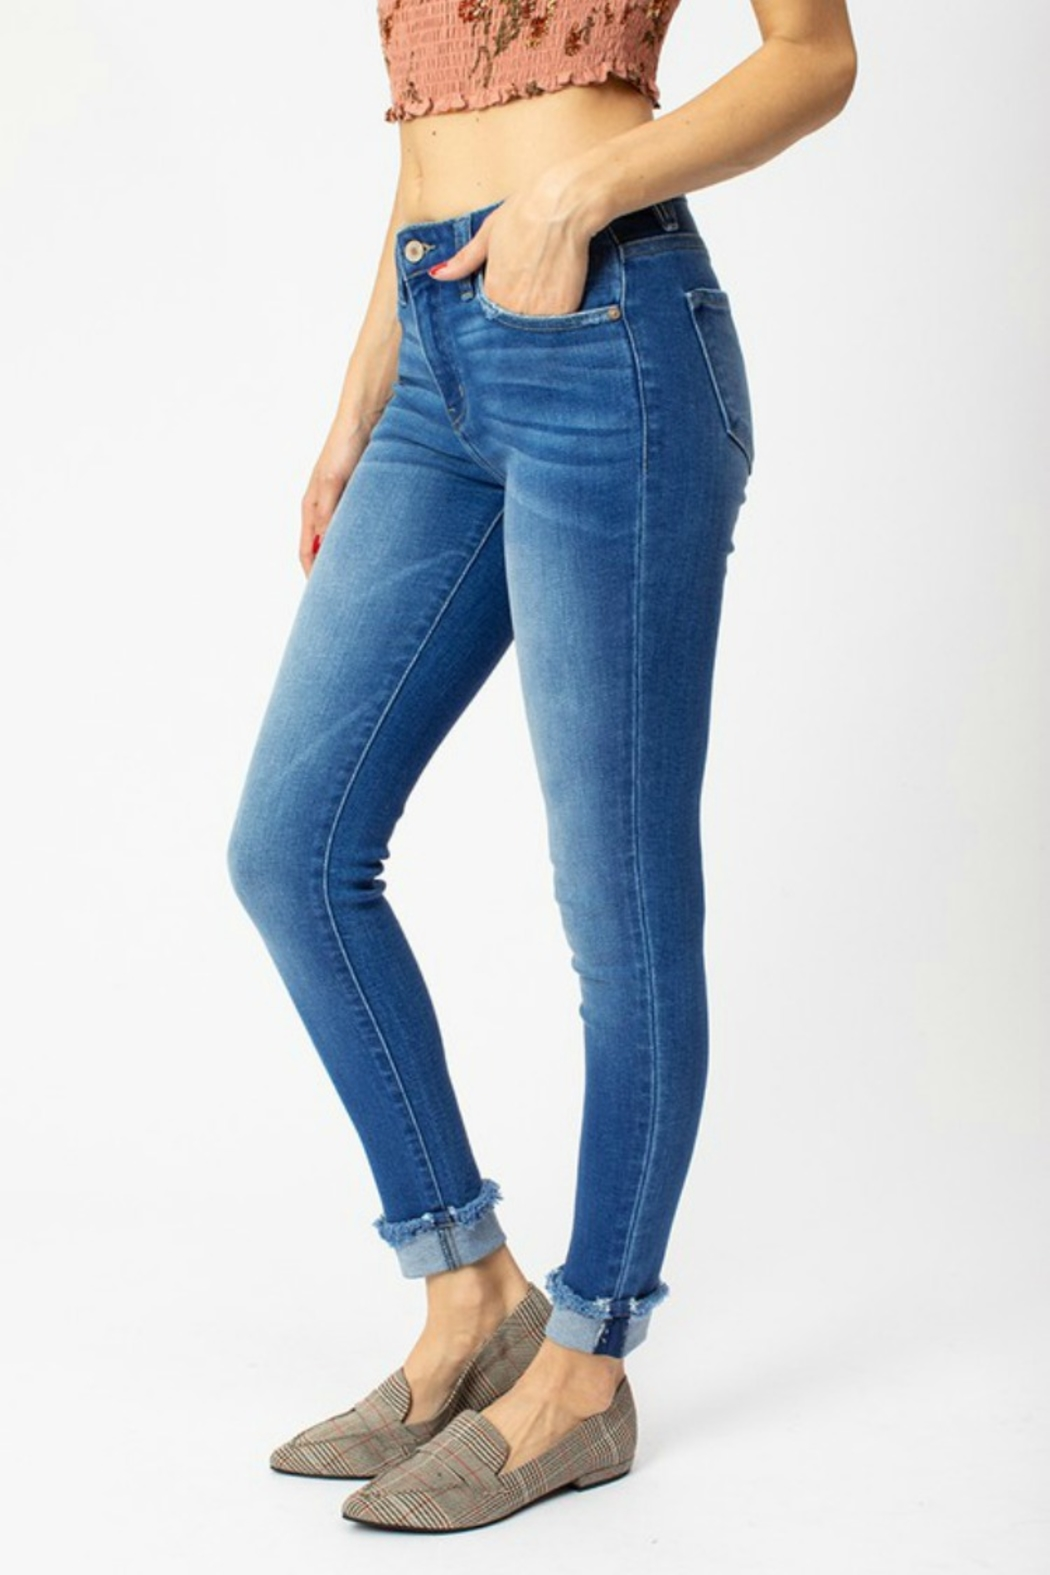 Kan Can WHITTNEY CUFF SKINNY - Front Full Image